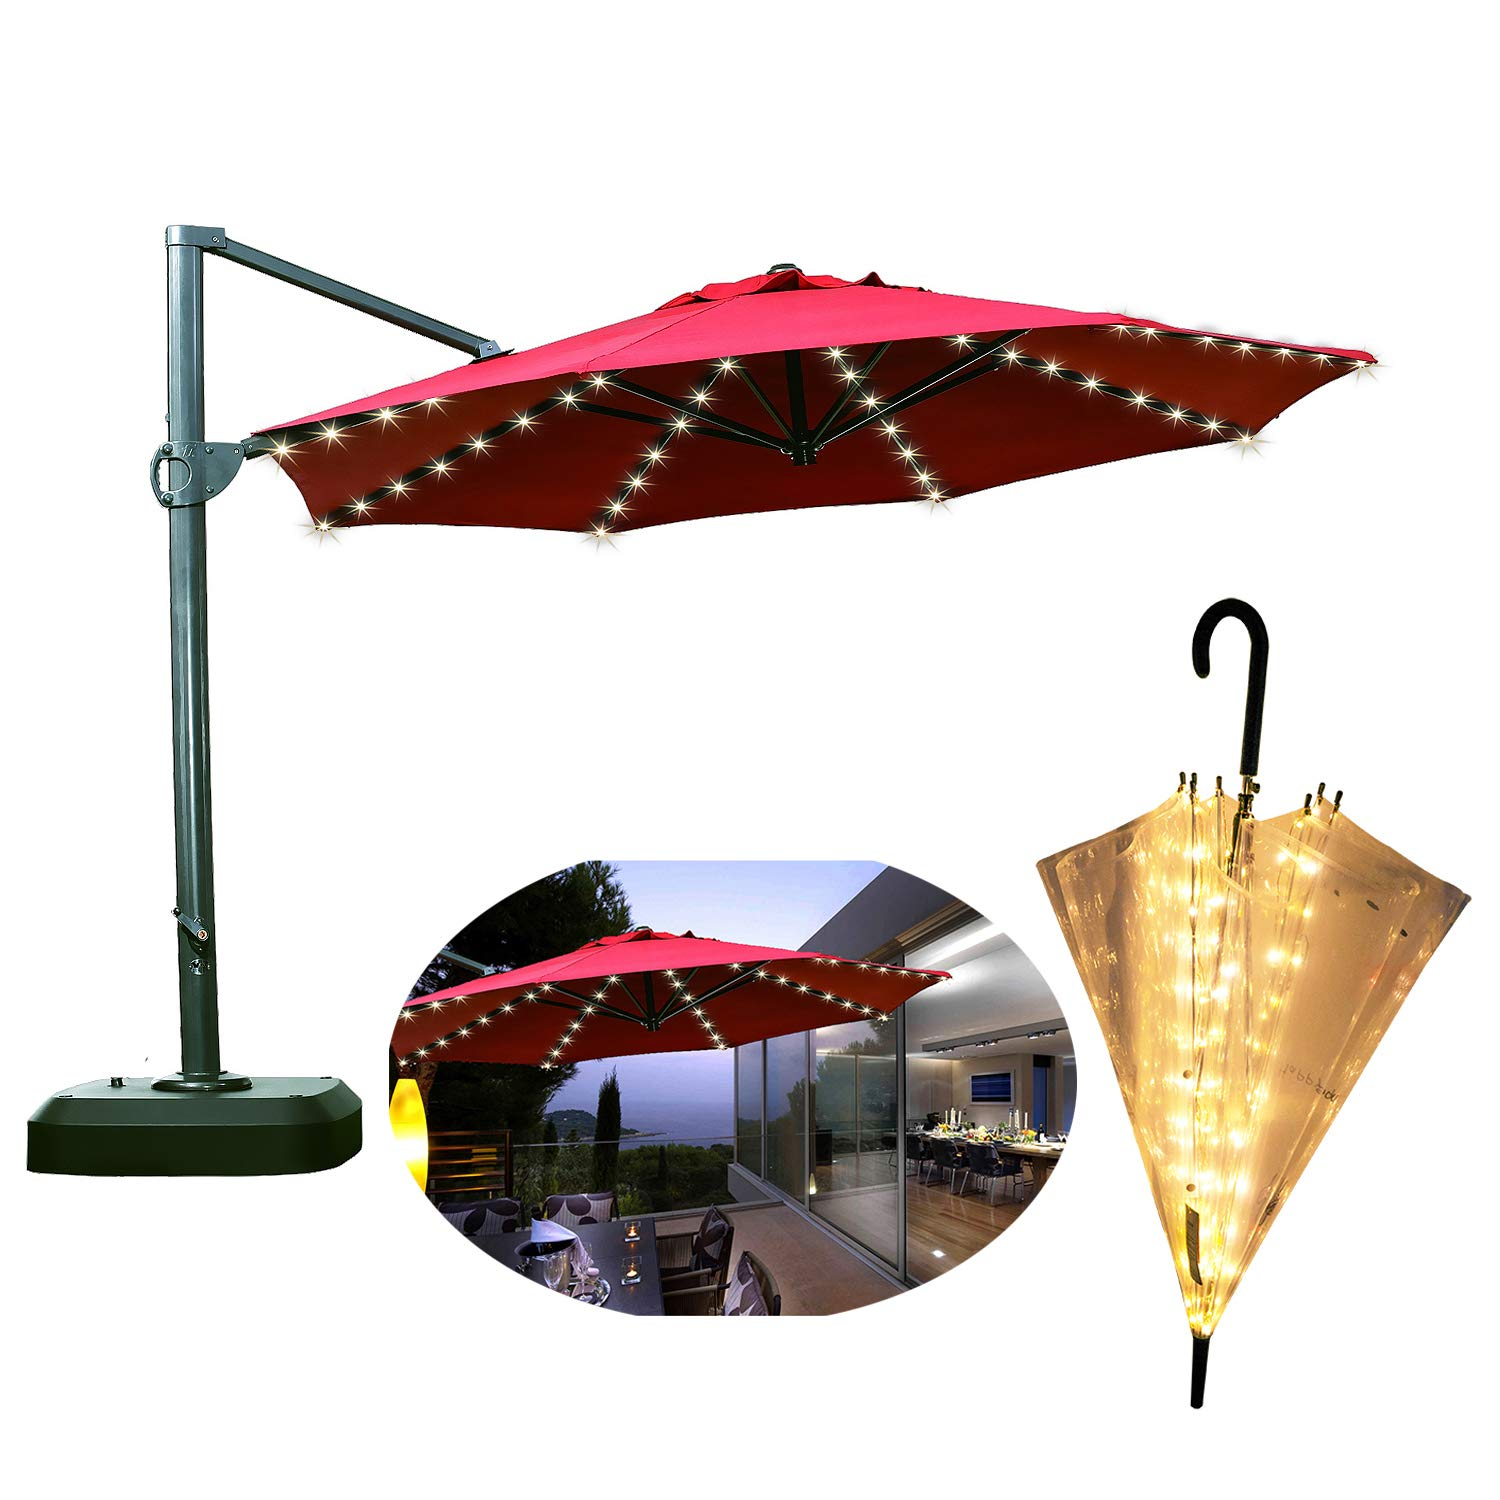 Areskey LED Umbrella Lights,Warm White 8x13 LED Starry Lights for Outdoor Umbrella,Large Patio Table Umbrella,or Portable Umbrella,Deckyard,Tents,Cafe,Garden,Travel,Beach,Party Decor (only Light)